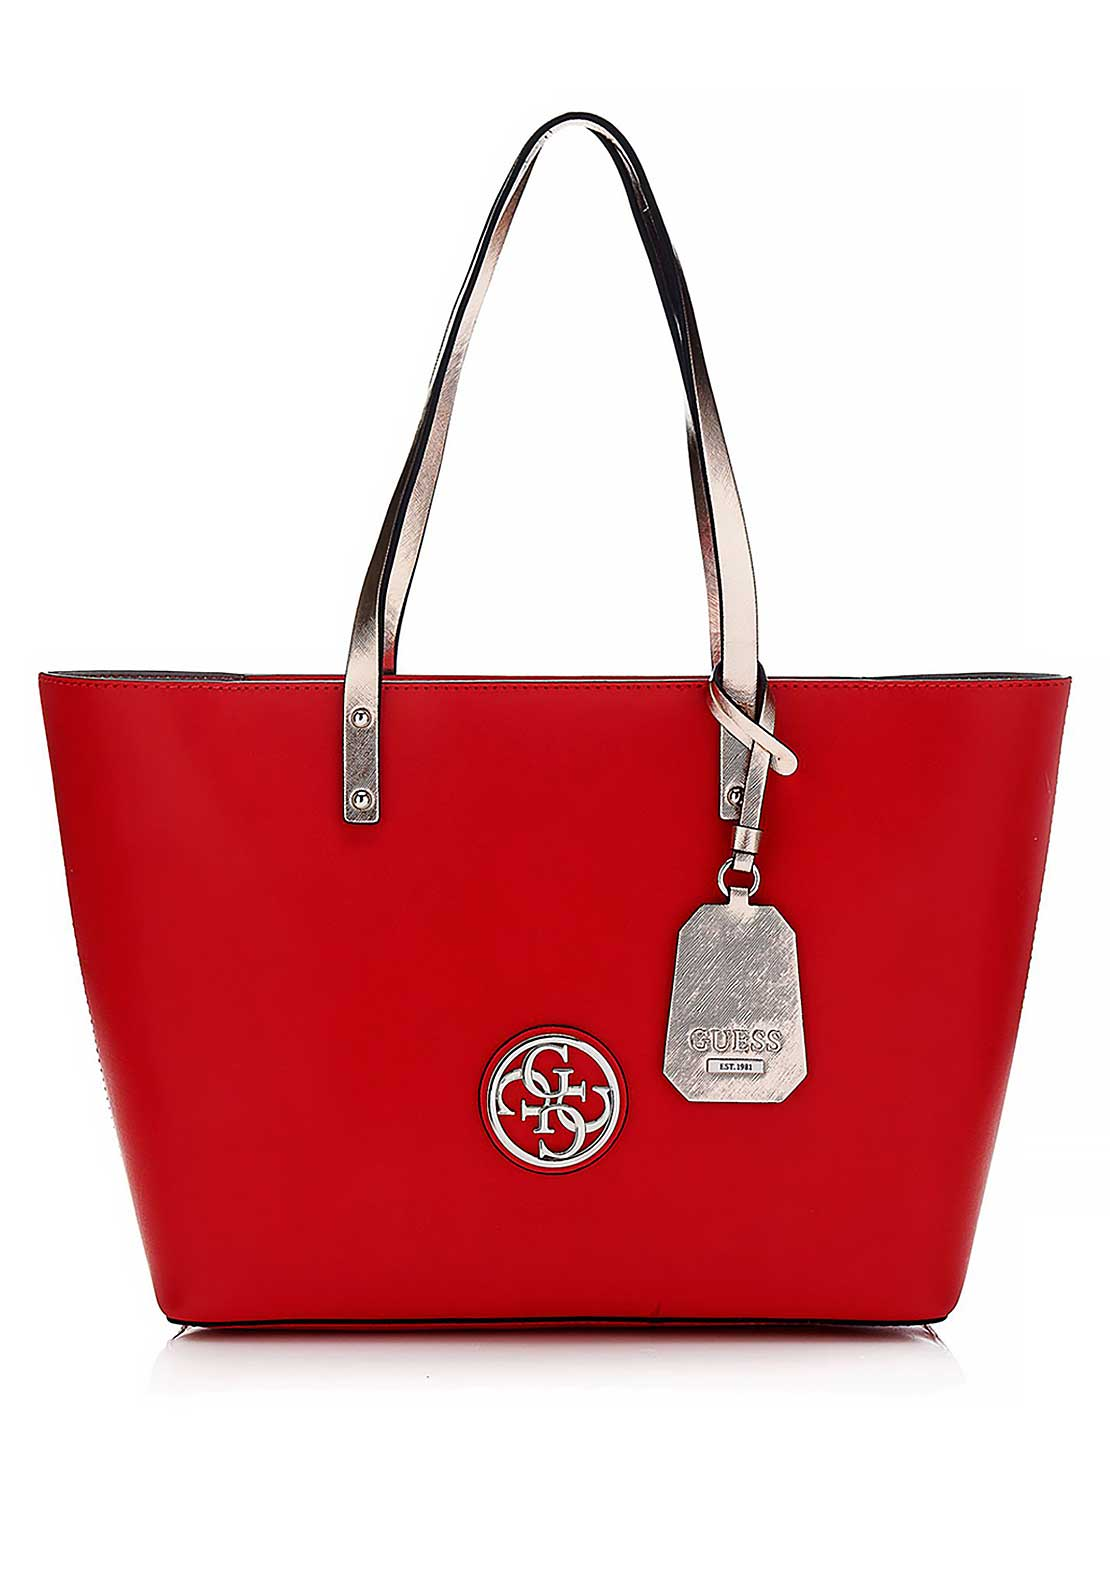 Guess Womens Jolie Tote Bag and Pouch, Lipstick Multi